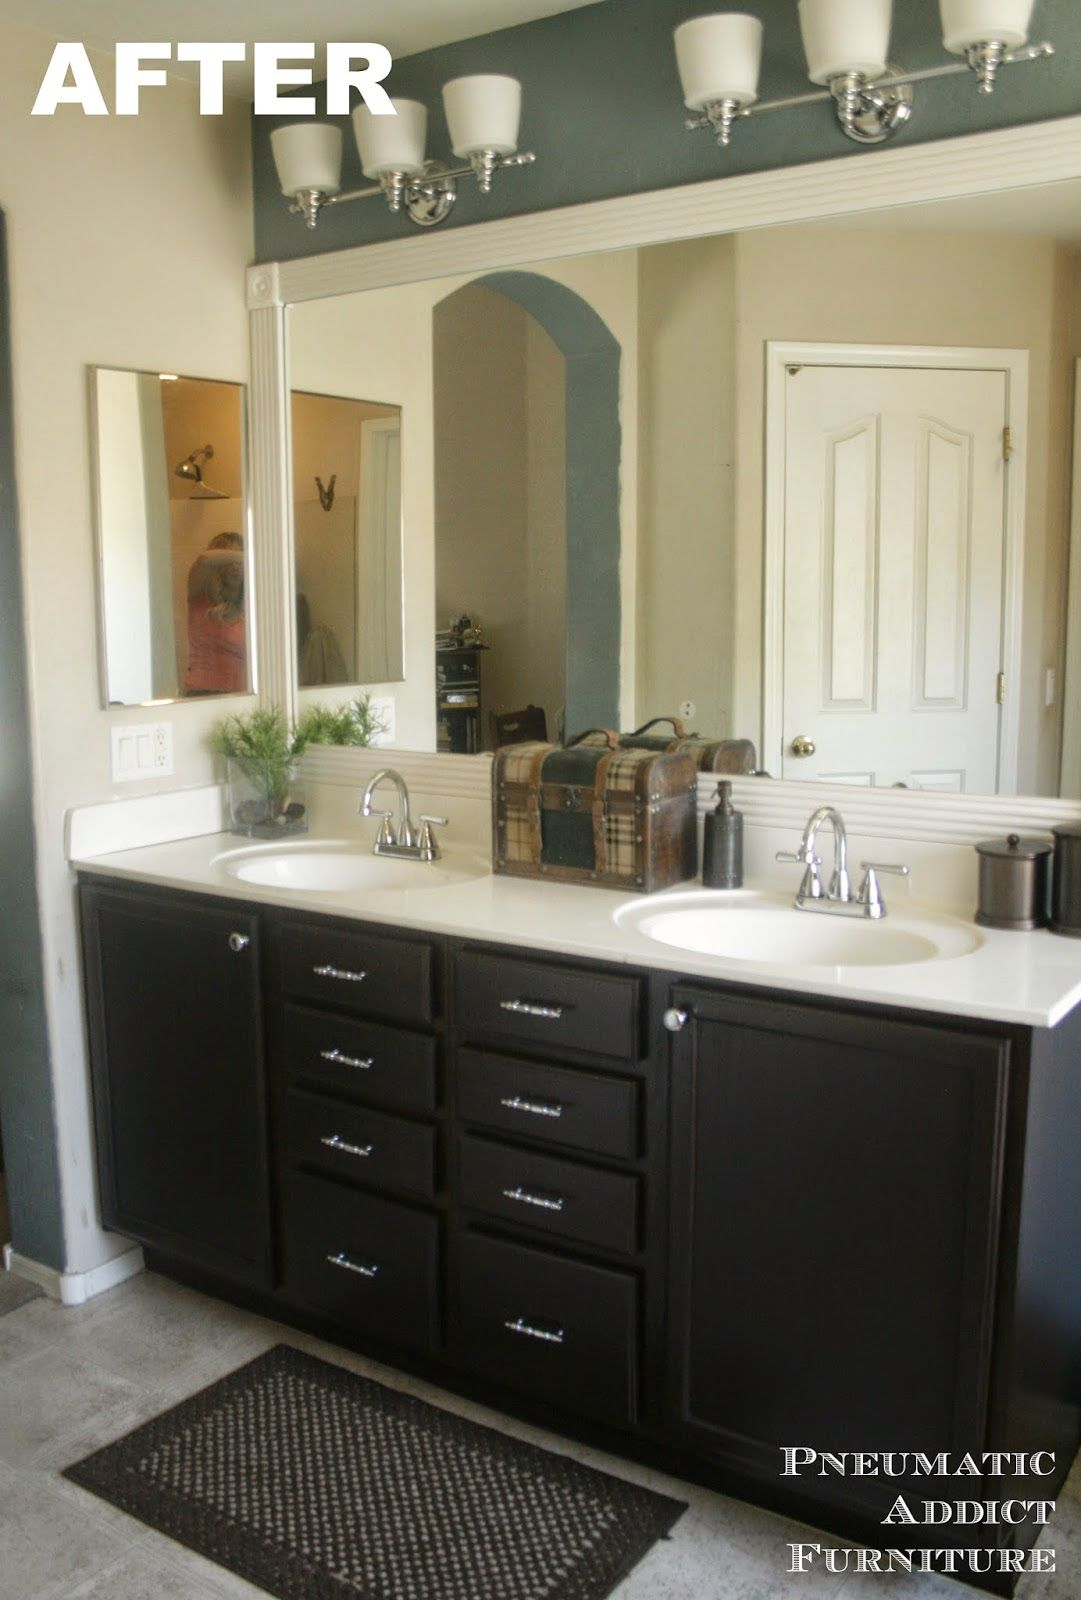 Darken Cabinets Without Stripping The Existing Finish Refinishing Cabinets Cheap Home Decor Bathroom Decor